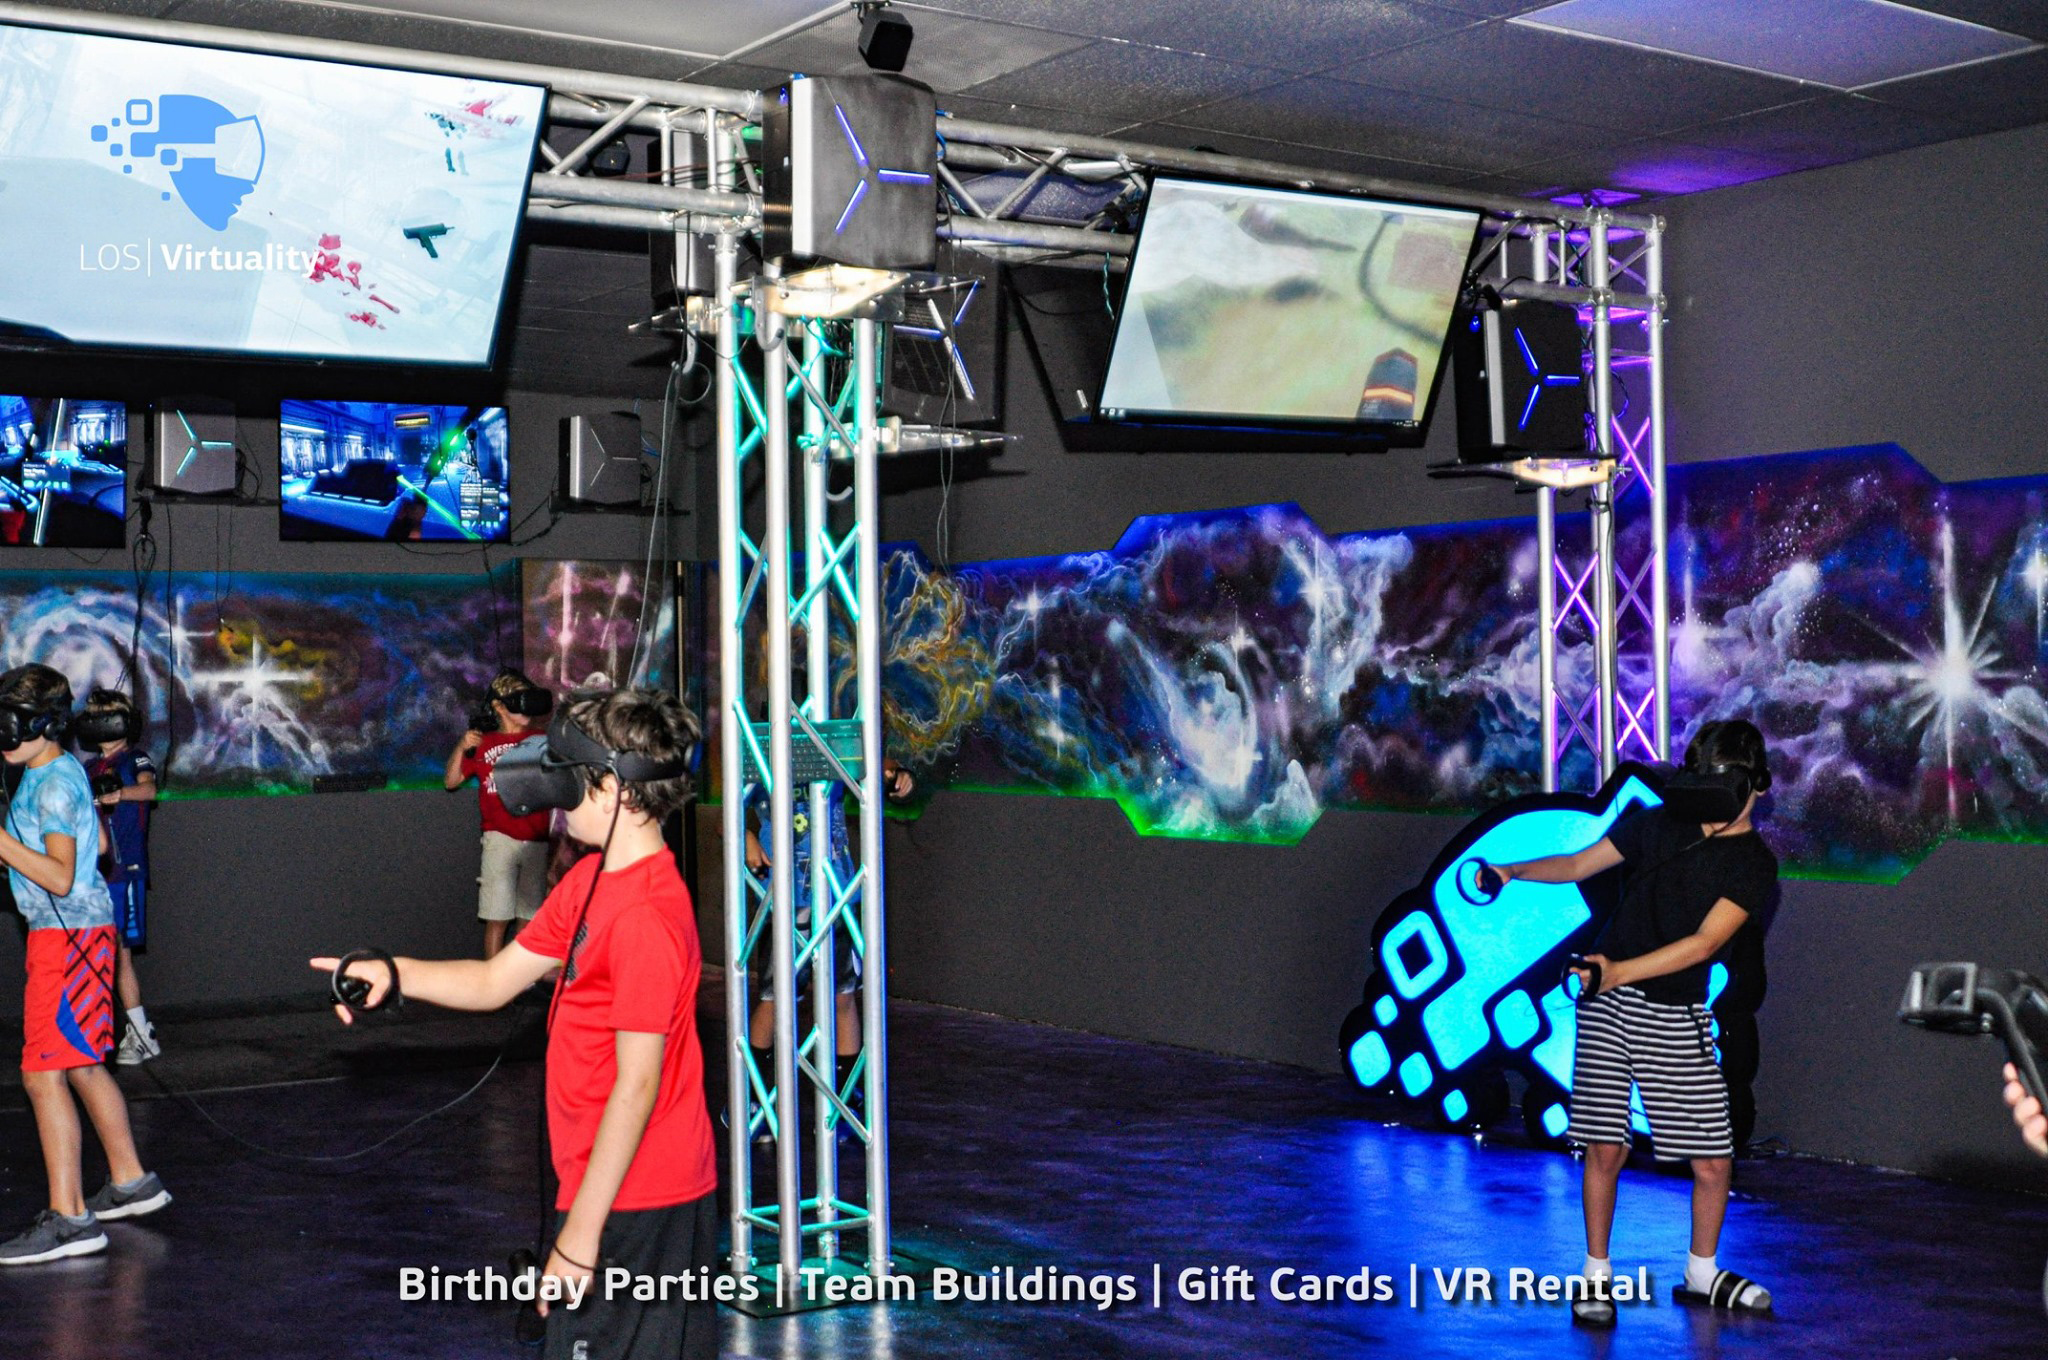 Birthday Party In Virtual Reality - VR Space - Image 1